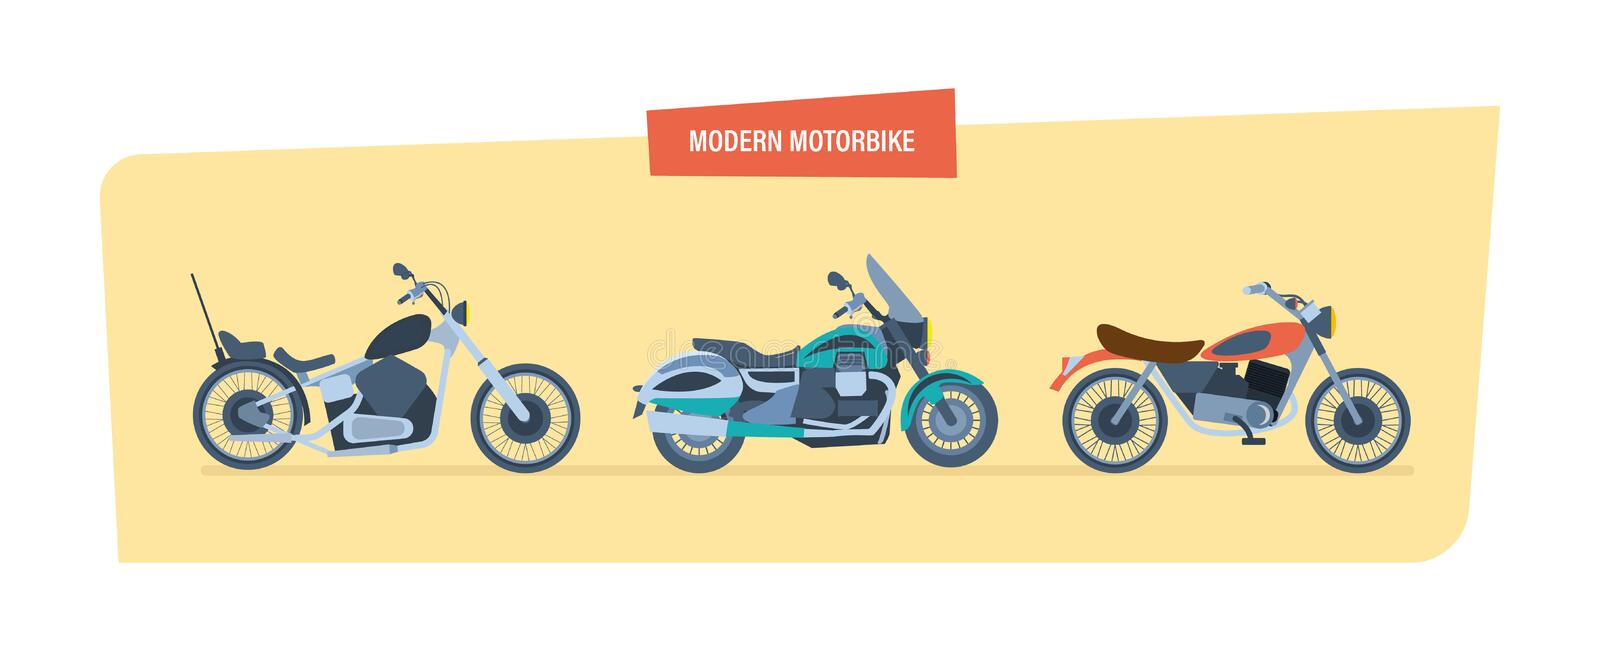 Different types of modern motorcycles: sports, biker motorcycle, classic. royalty free illustration